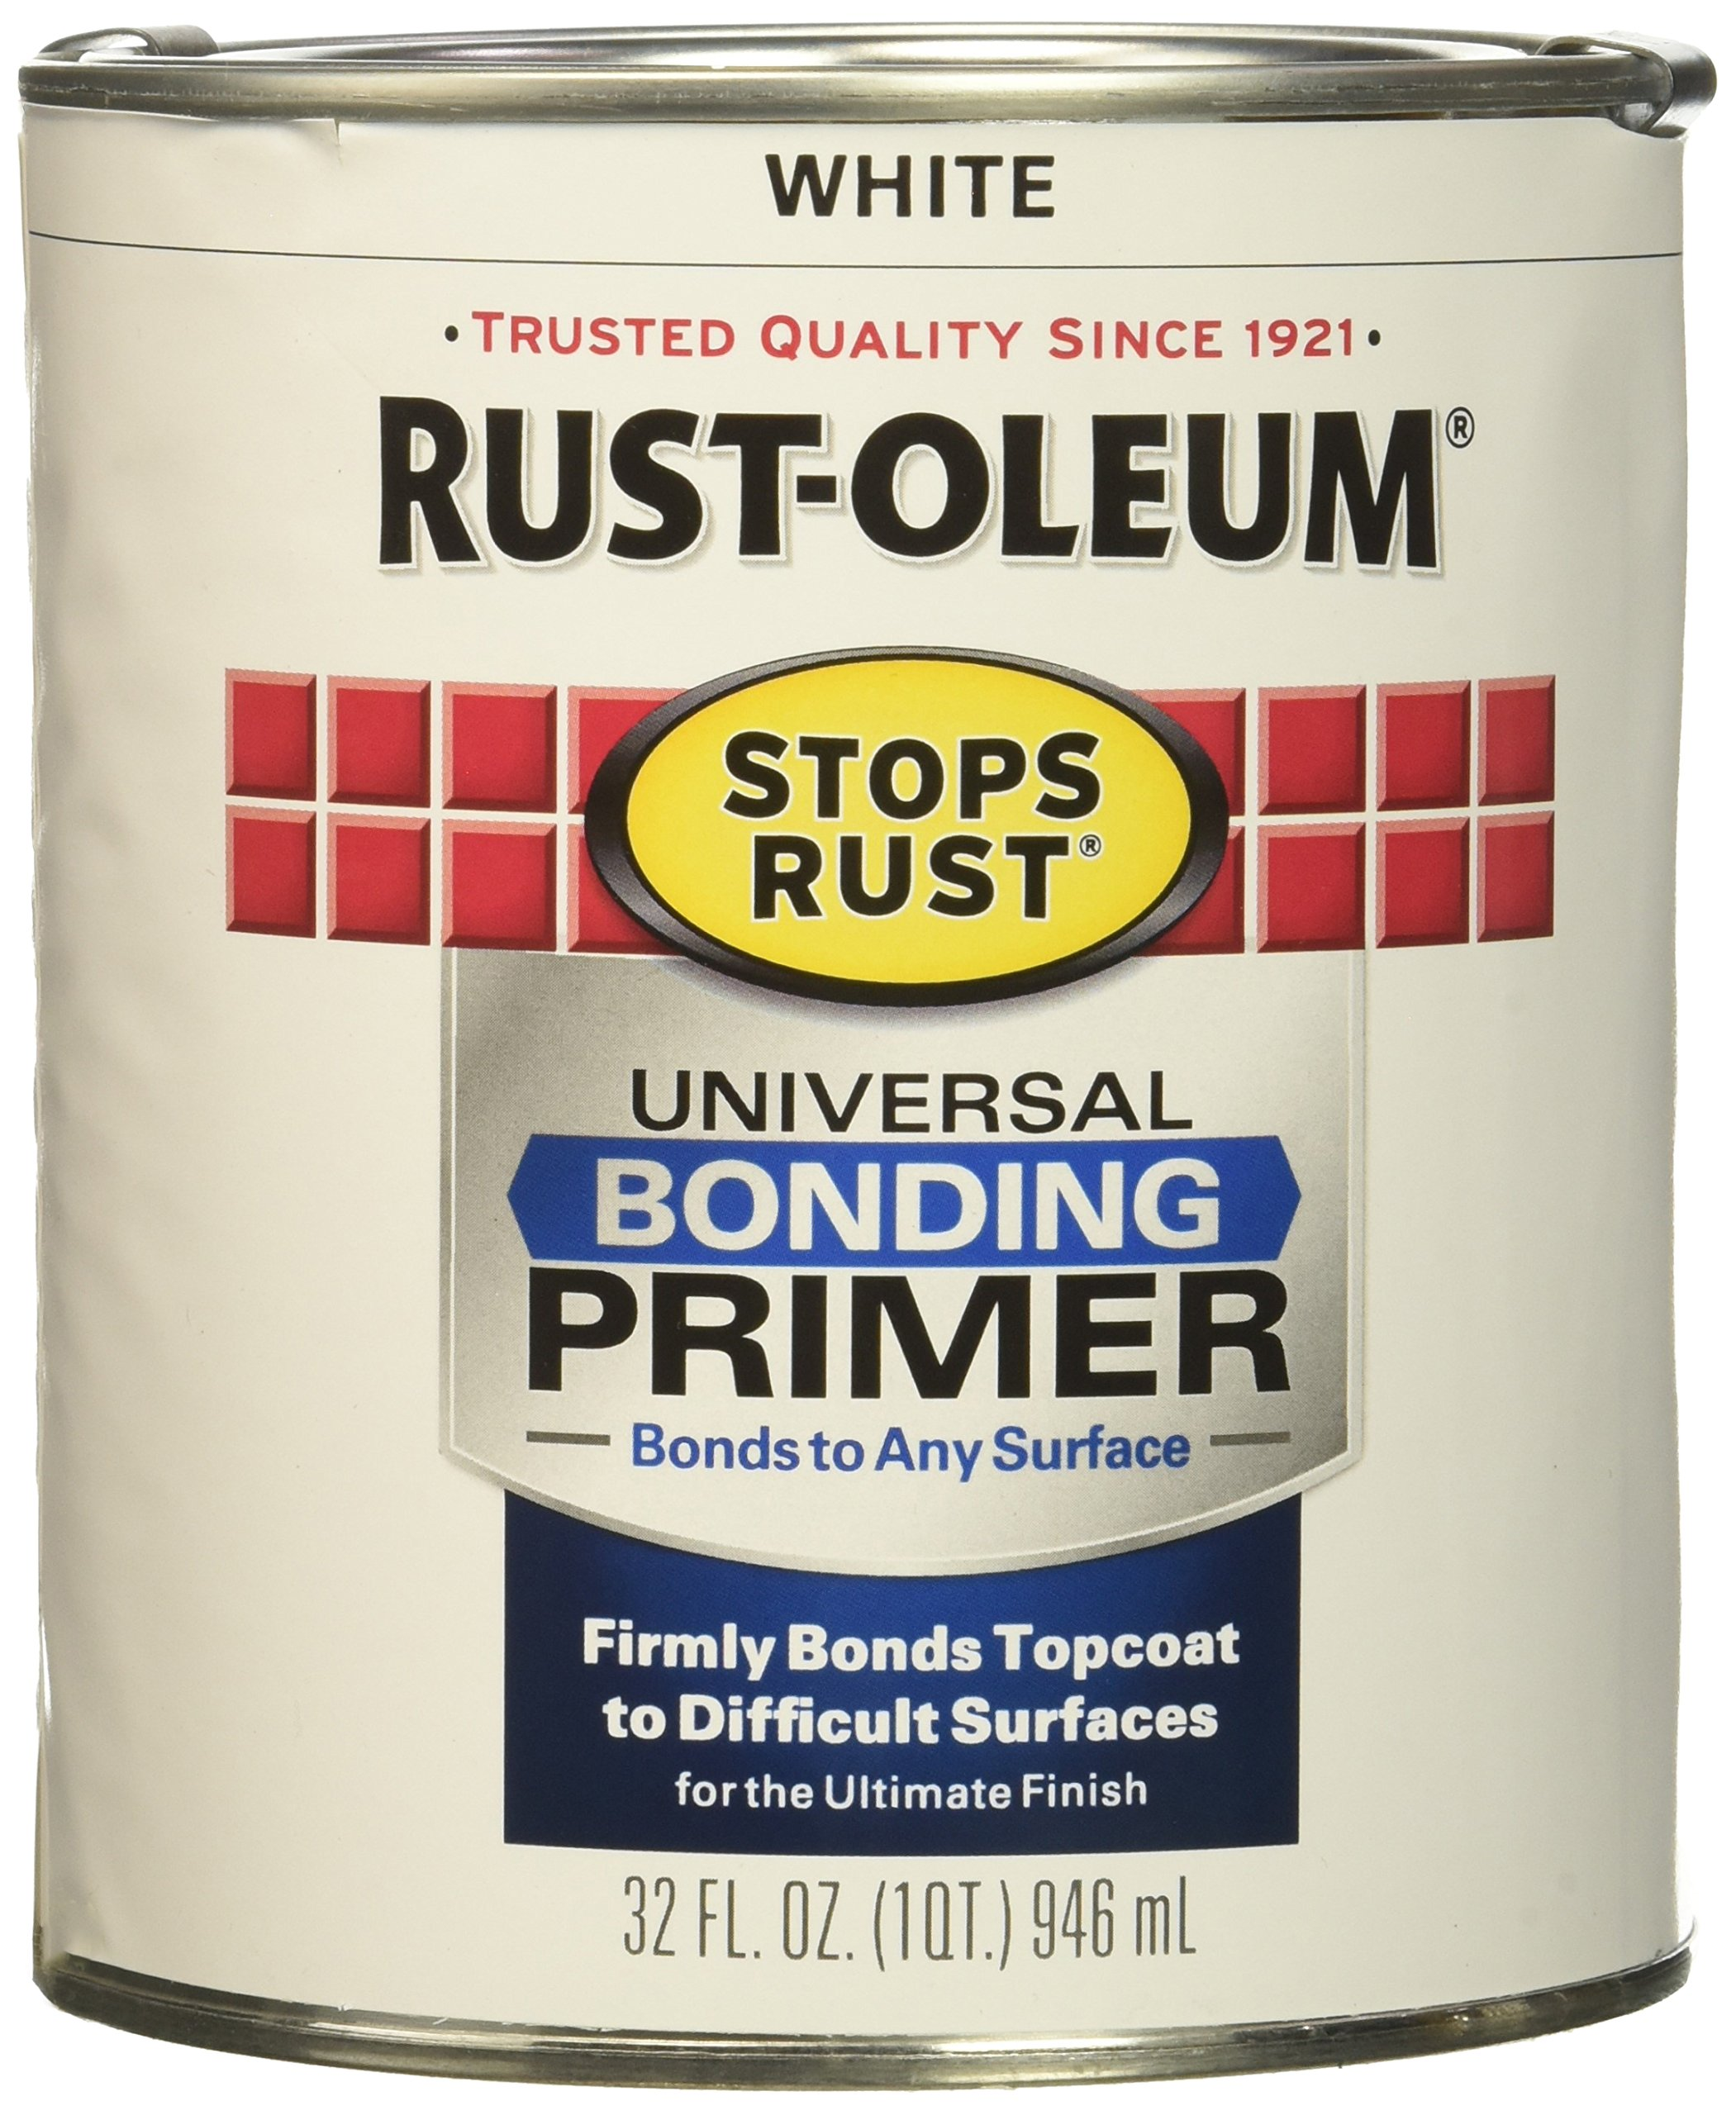 Rust-OLEUM 330494 Quart Universal Bonding Primer